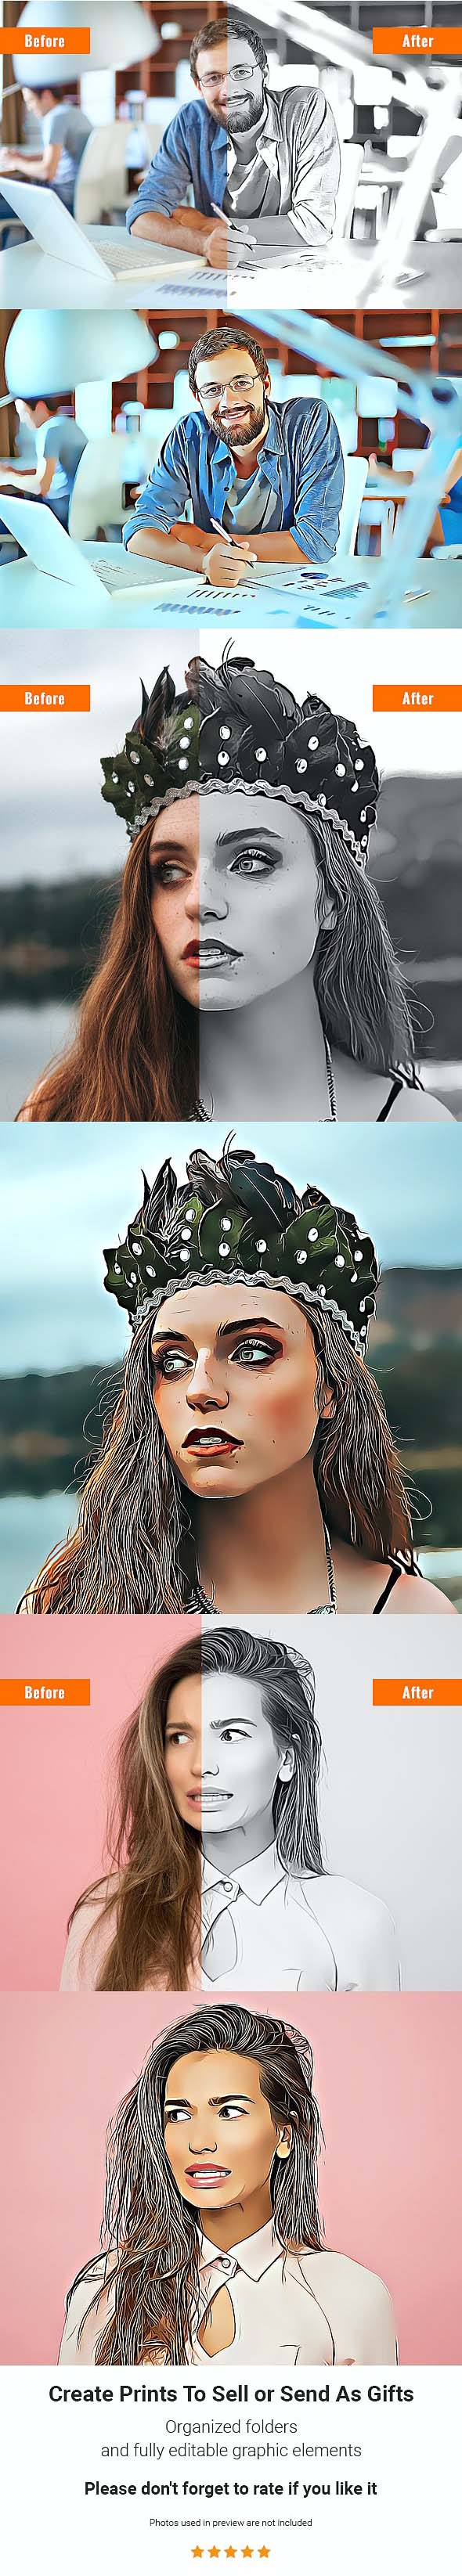 Charcoal Sketcher Mode Photoshop Action